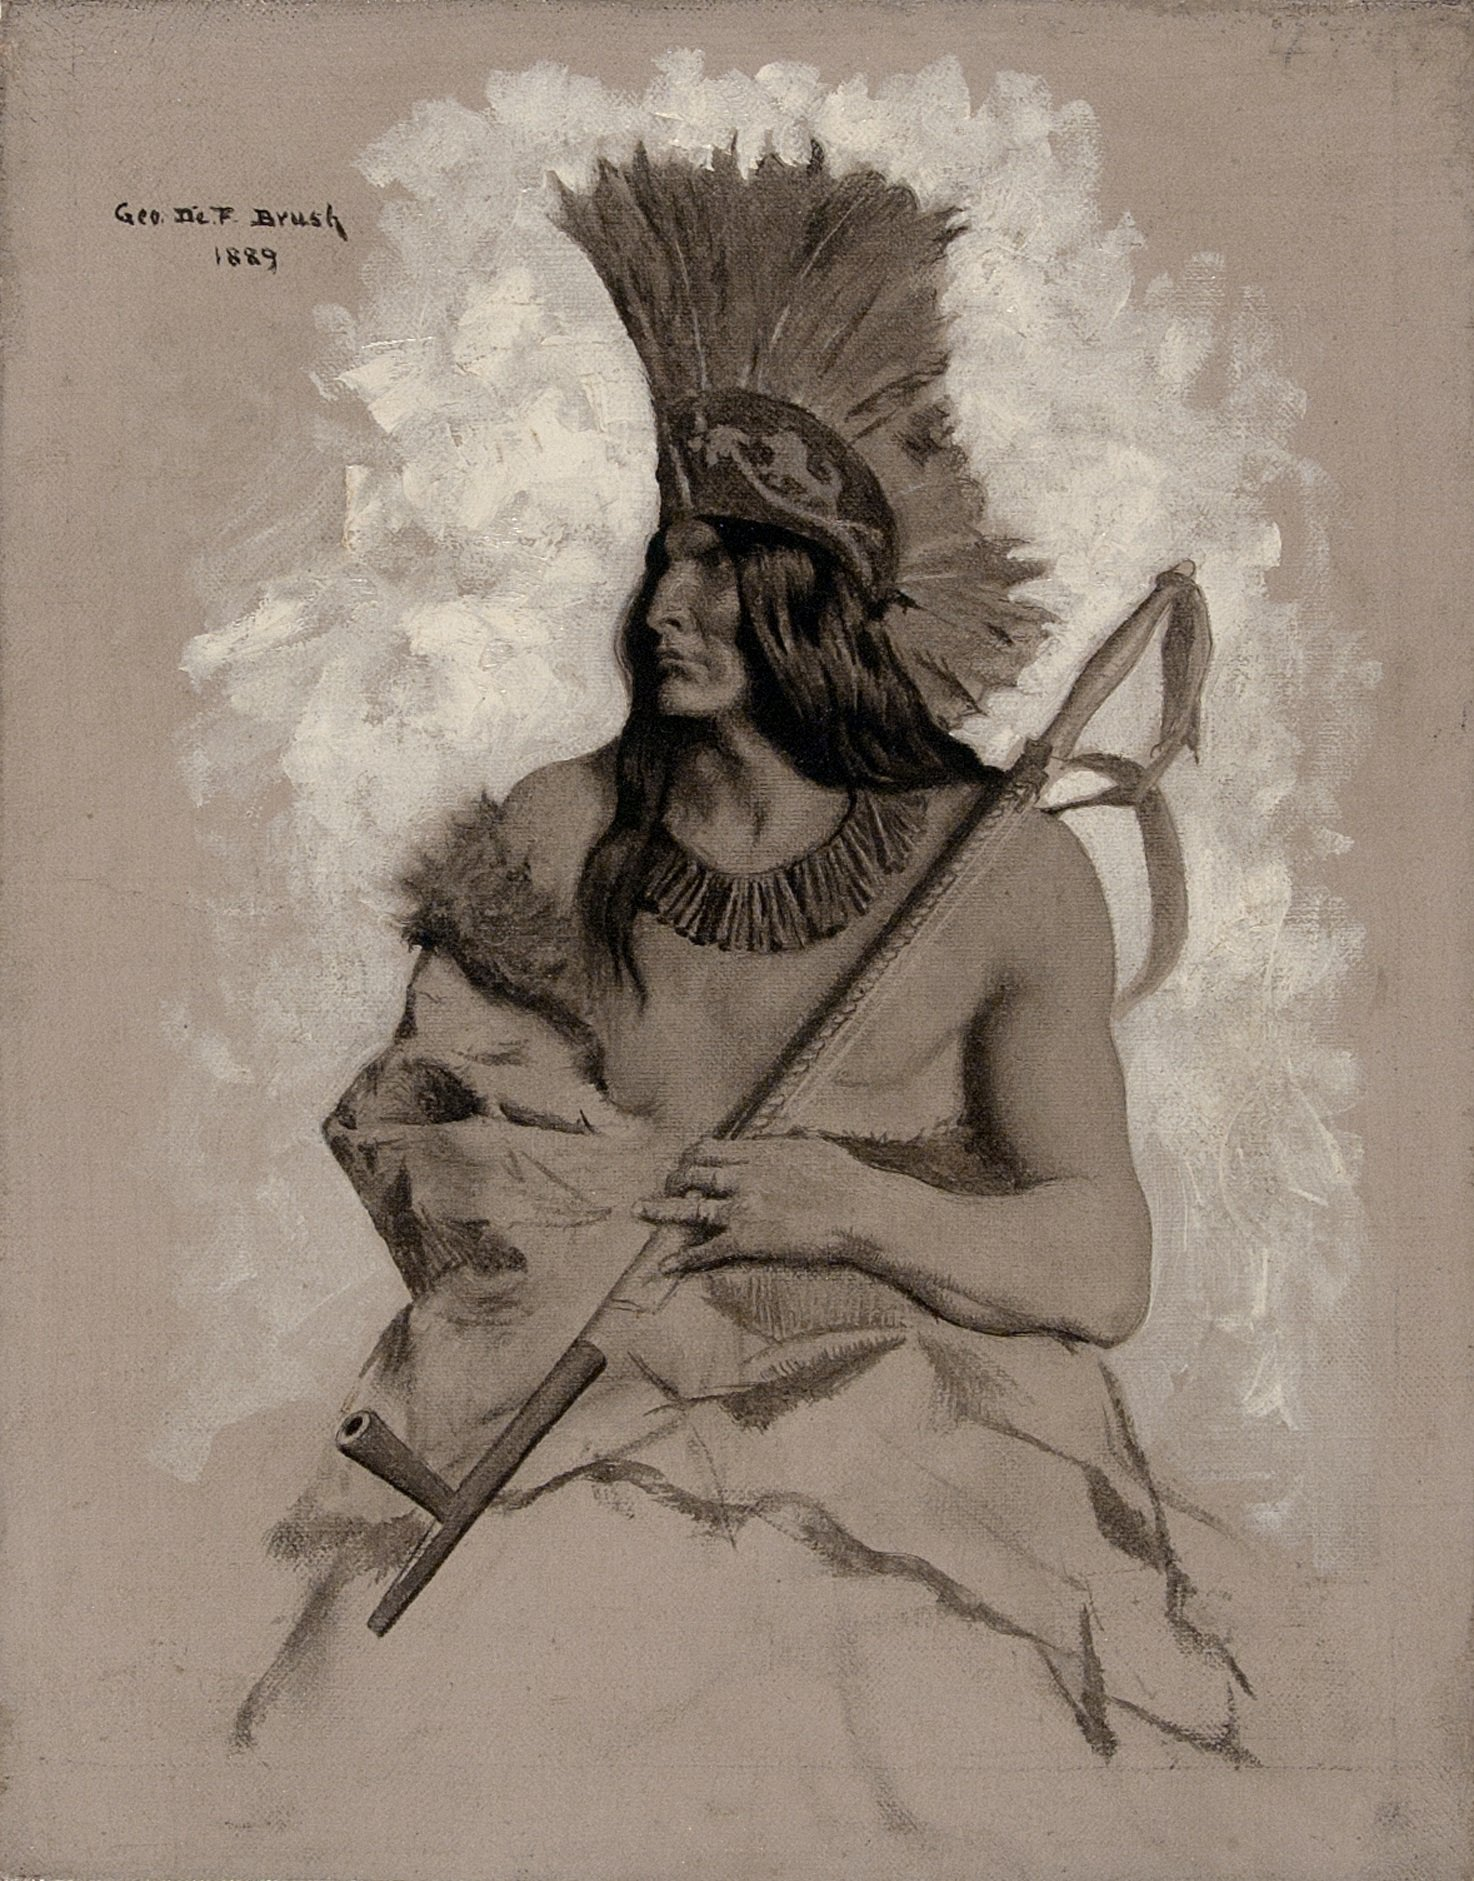 George de Forest Brush, Seated Indian Chief, 1889.jpg